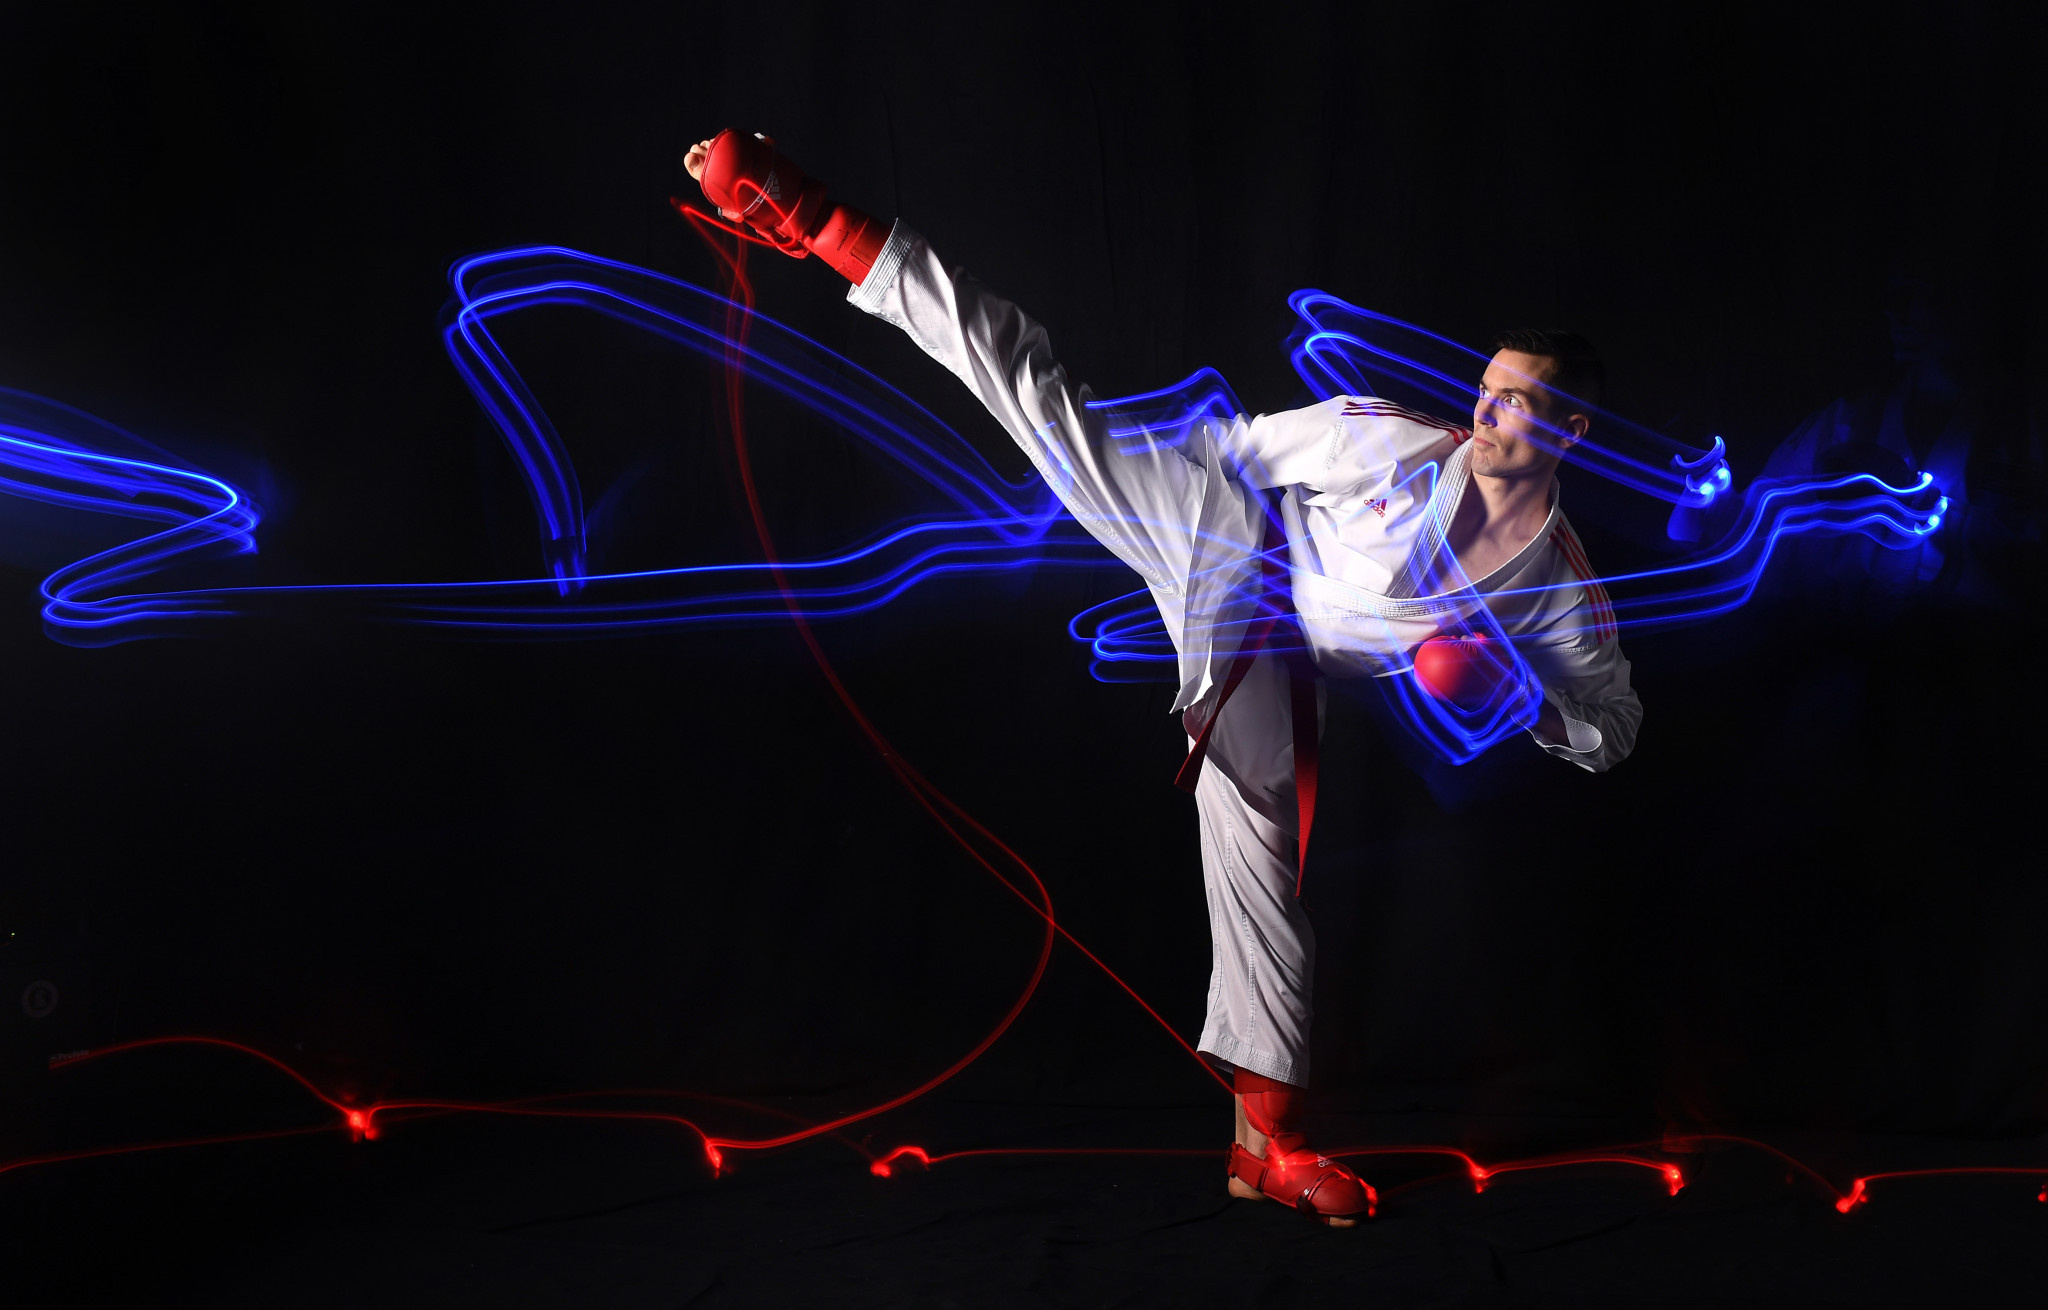 WKF launches #KarateSpirit campaign to capitalise on Tokyo 2020 debut